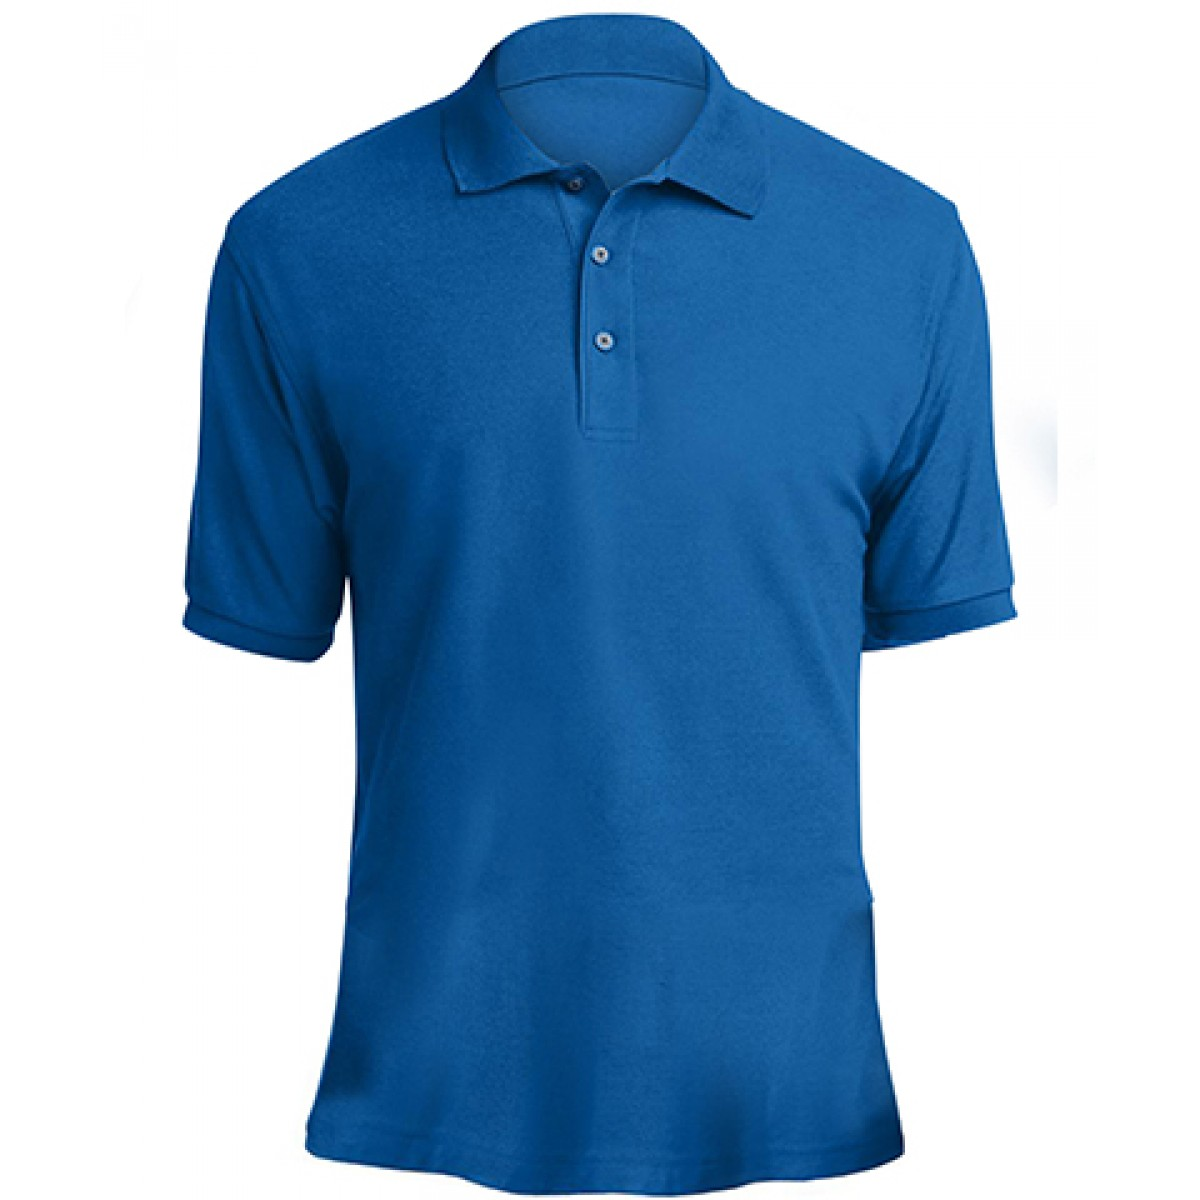 Womens Classic Polo -Royal Blue-S